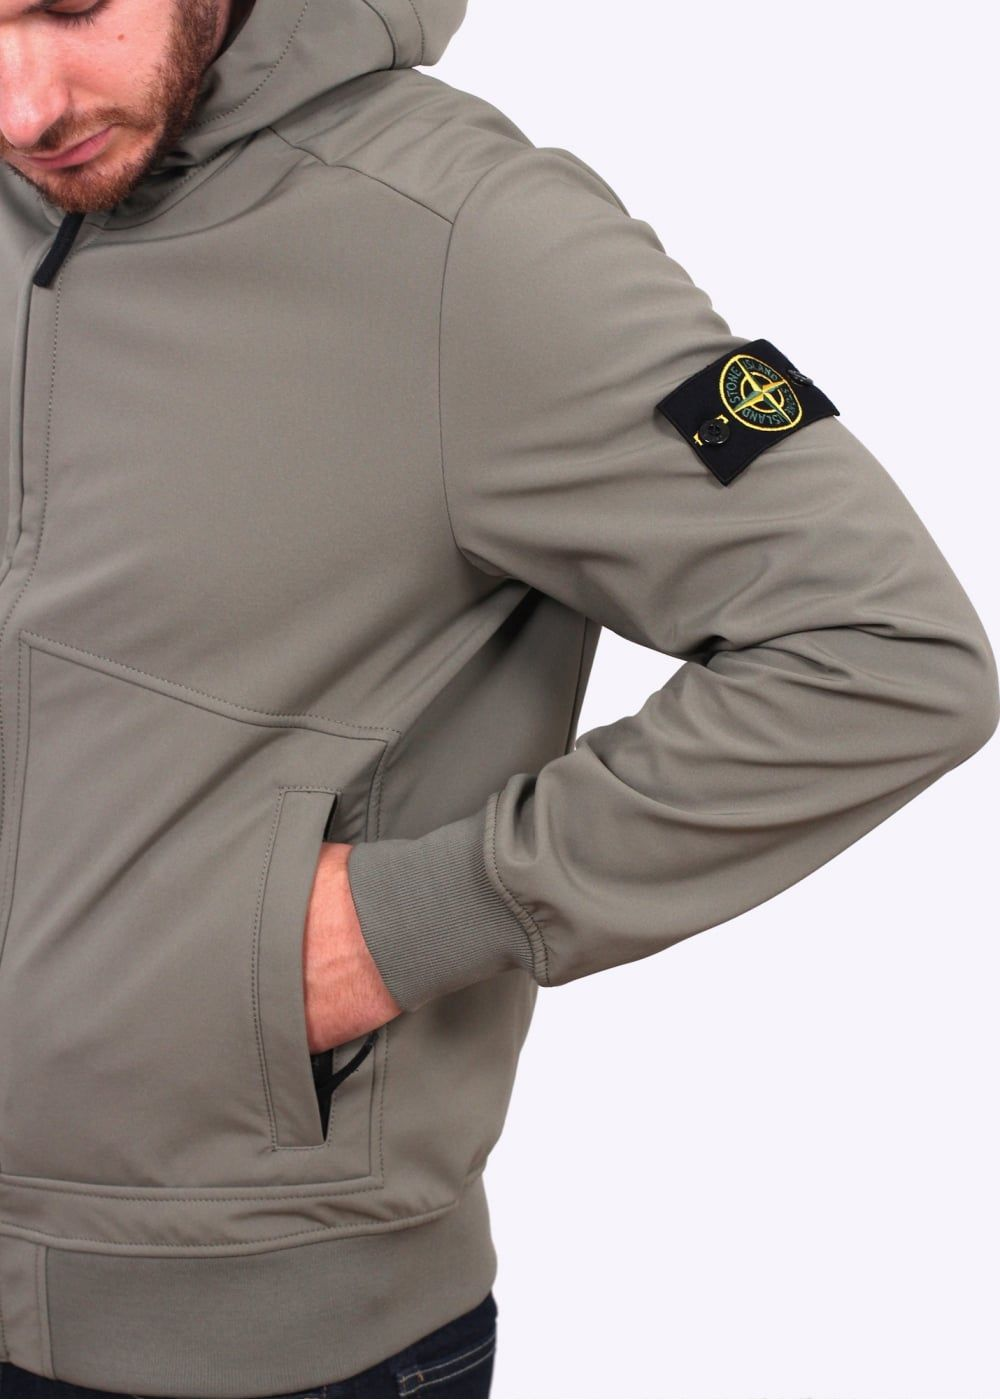 a85adc6c Stone Island Soft Shell-R Jacket - Sage | lifestyle now | Stone ...